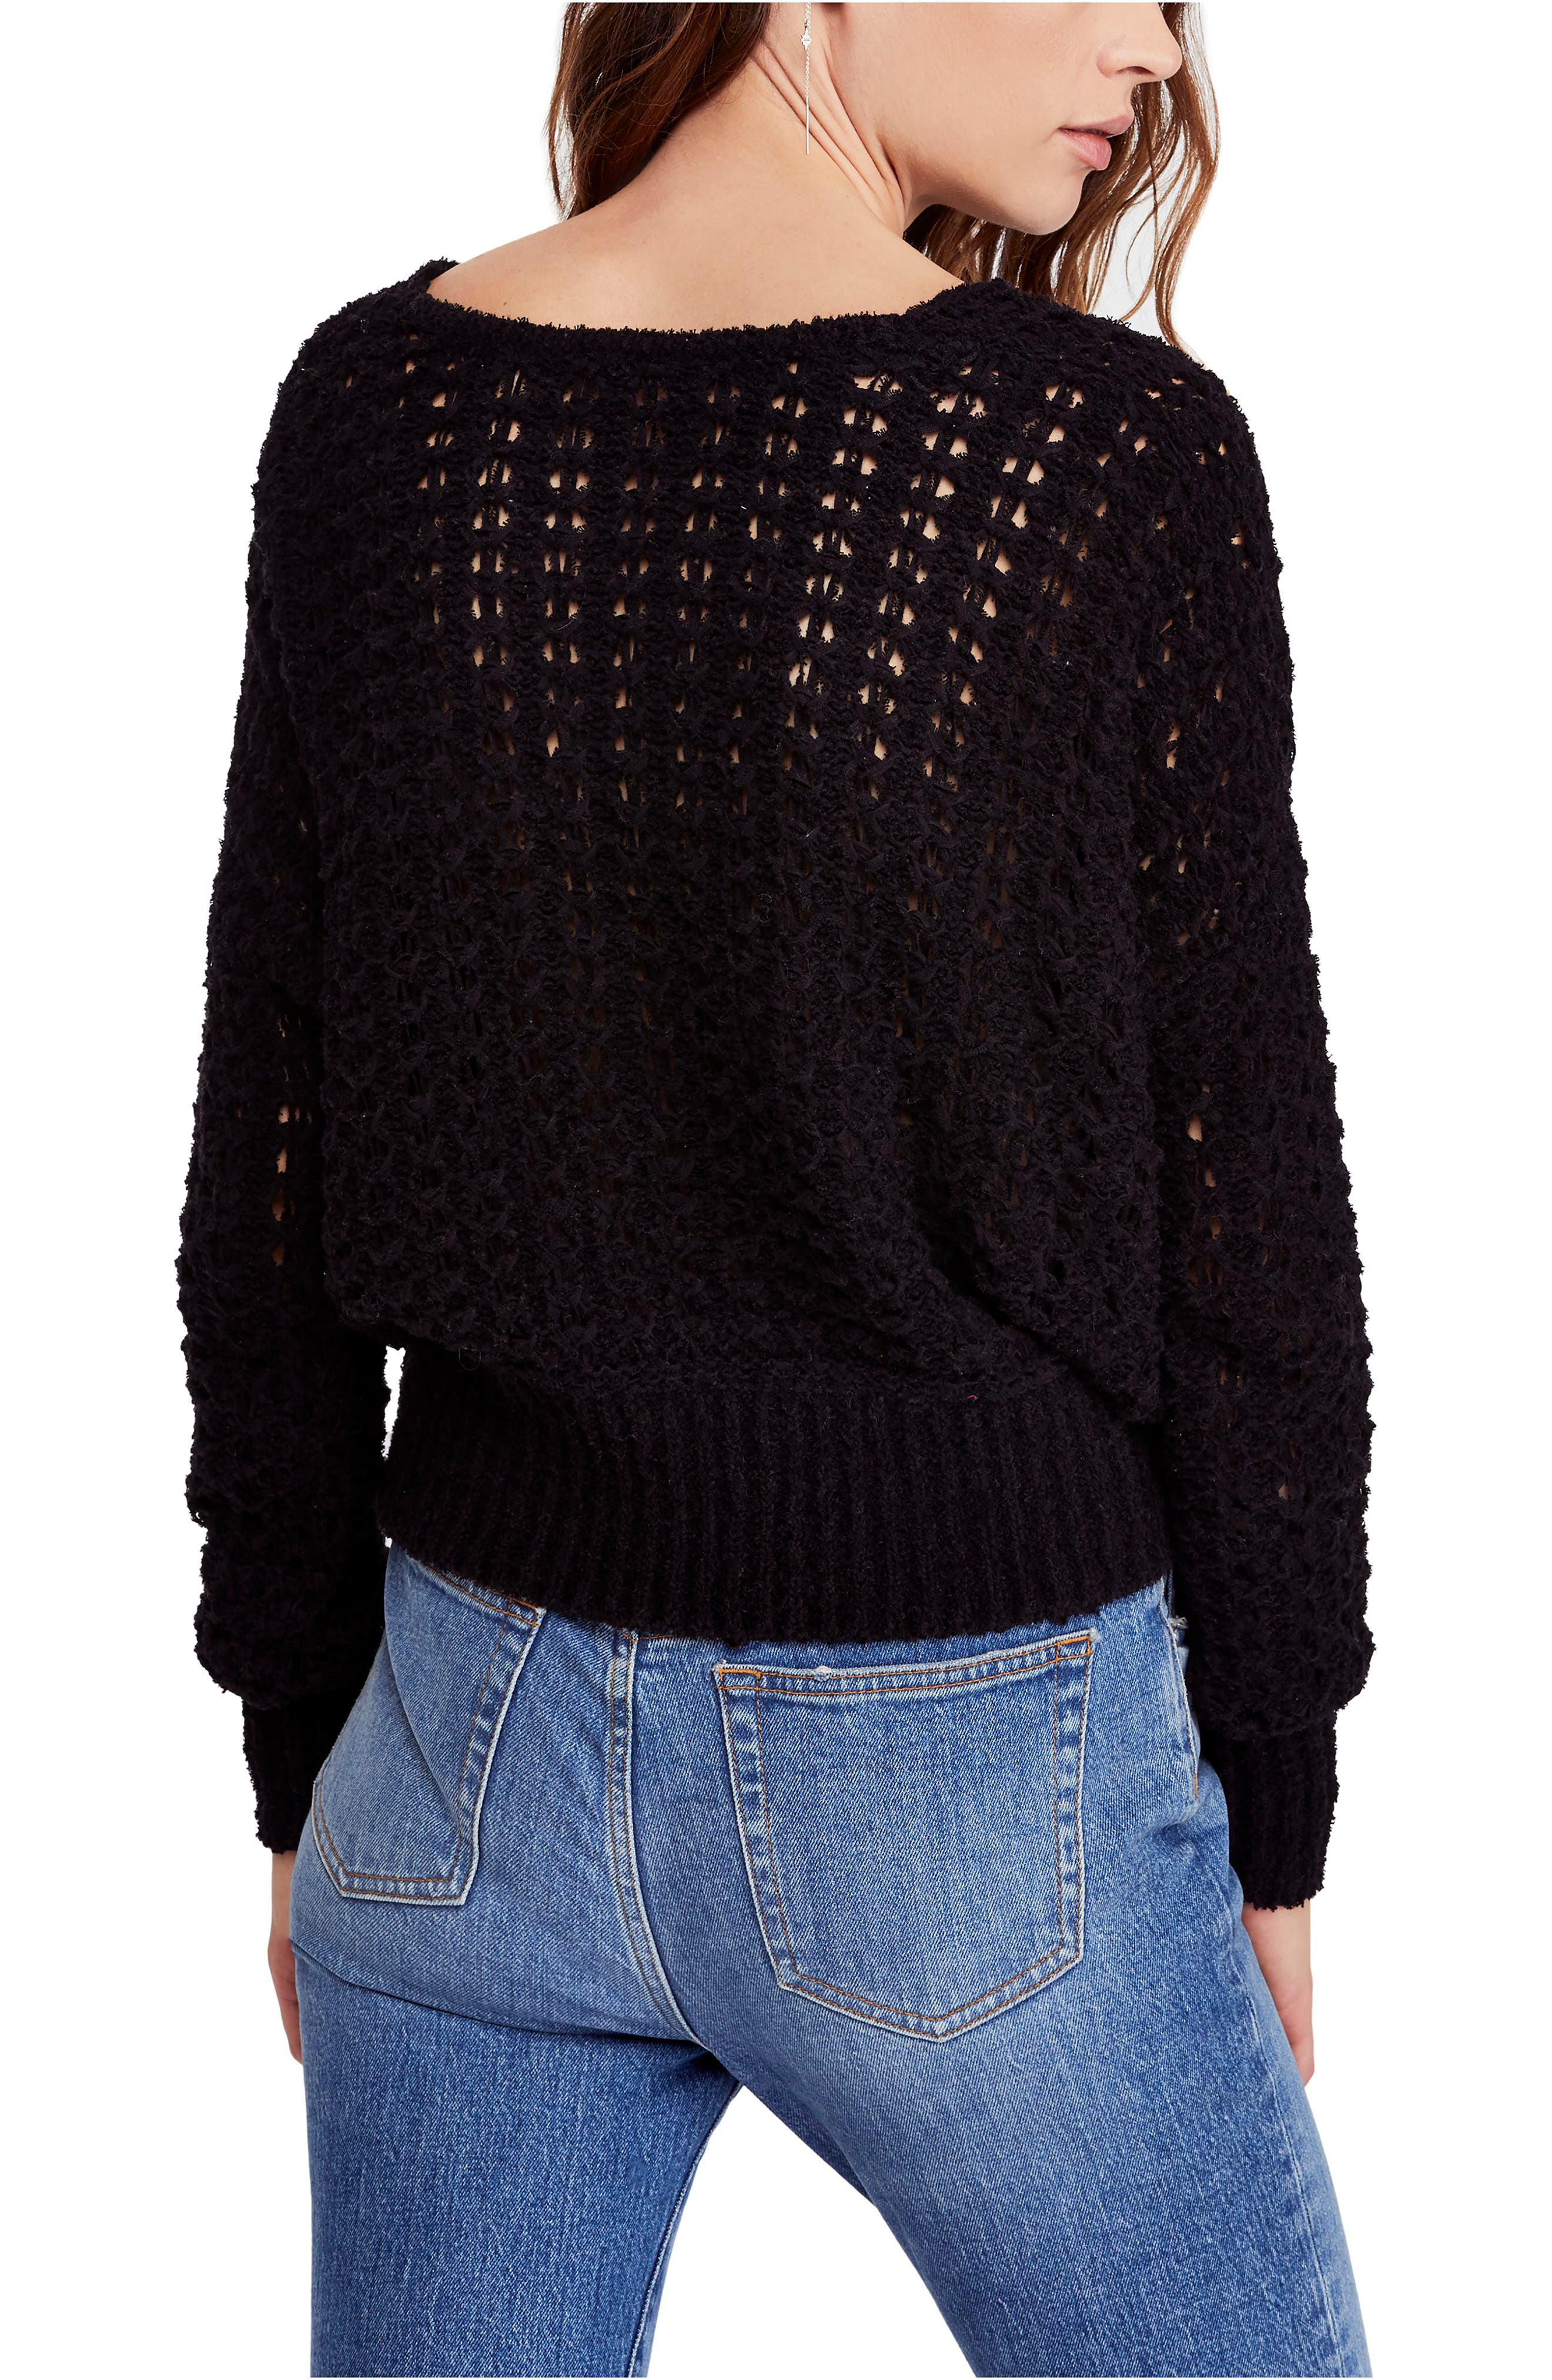 FREE PEOPLE, Best of You Sweater, Alternate thumbnail 2, color, BLACK